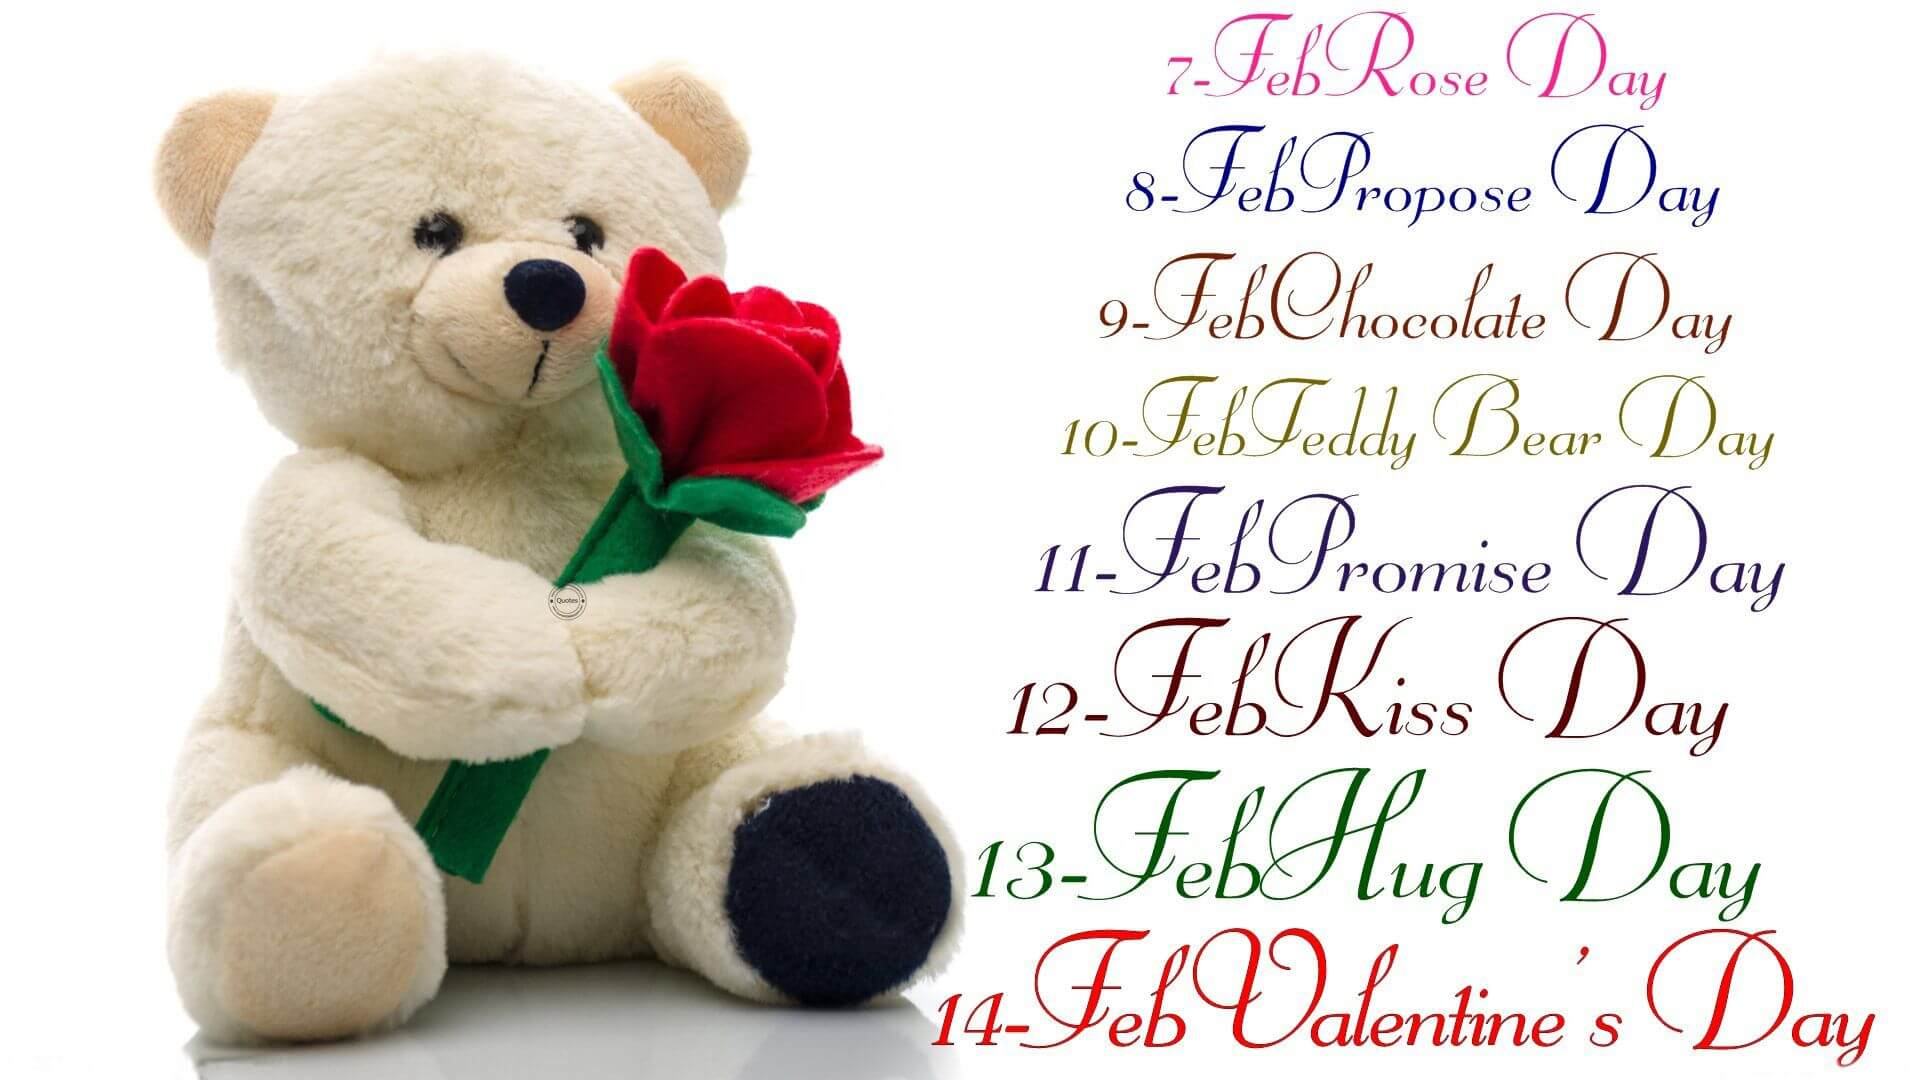 happy teddy day hug valentine week image hd wallpaper